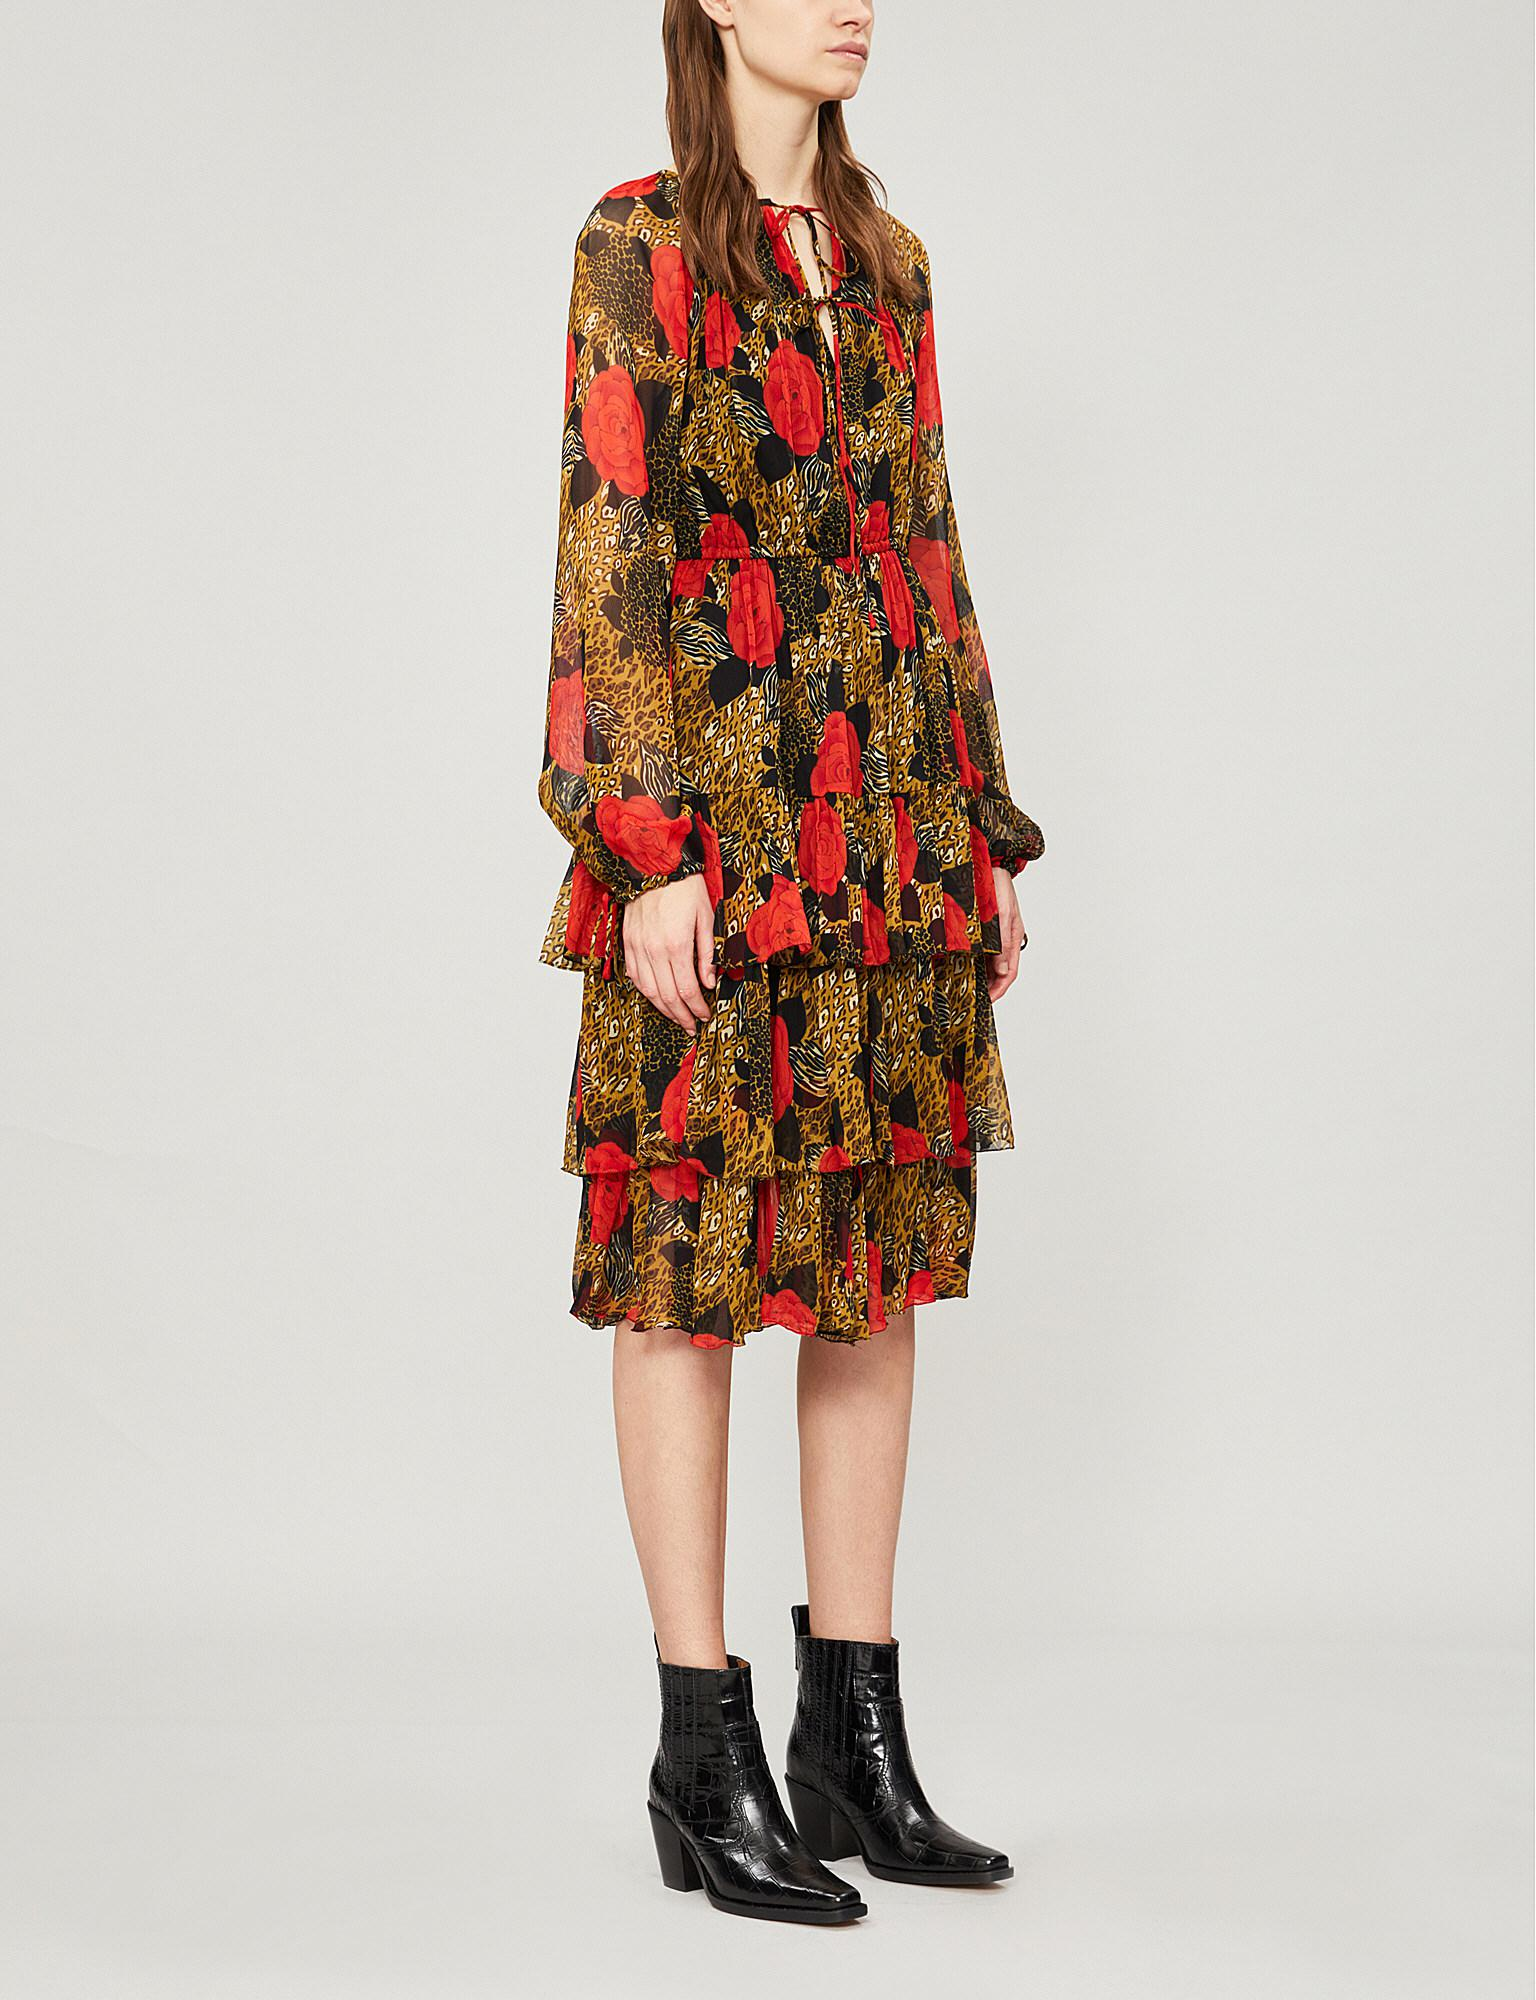 acb32be456 Lyst - The Kooples Frilled Crepe Dress in Red